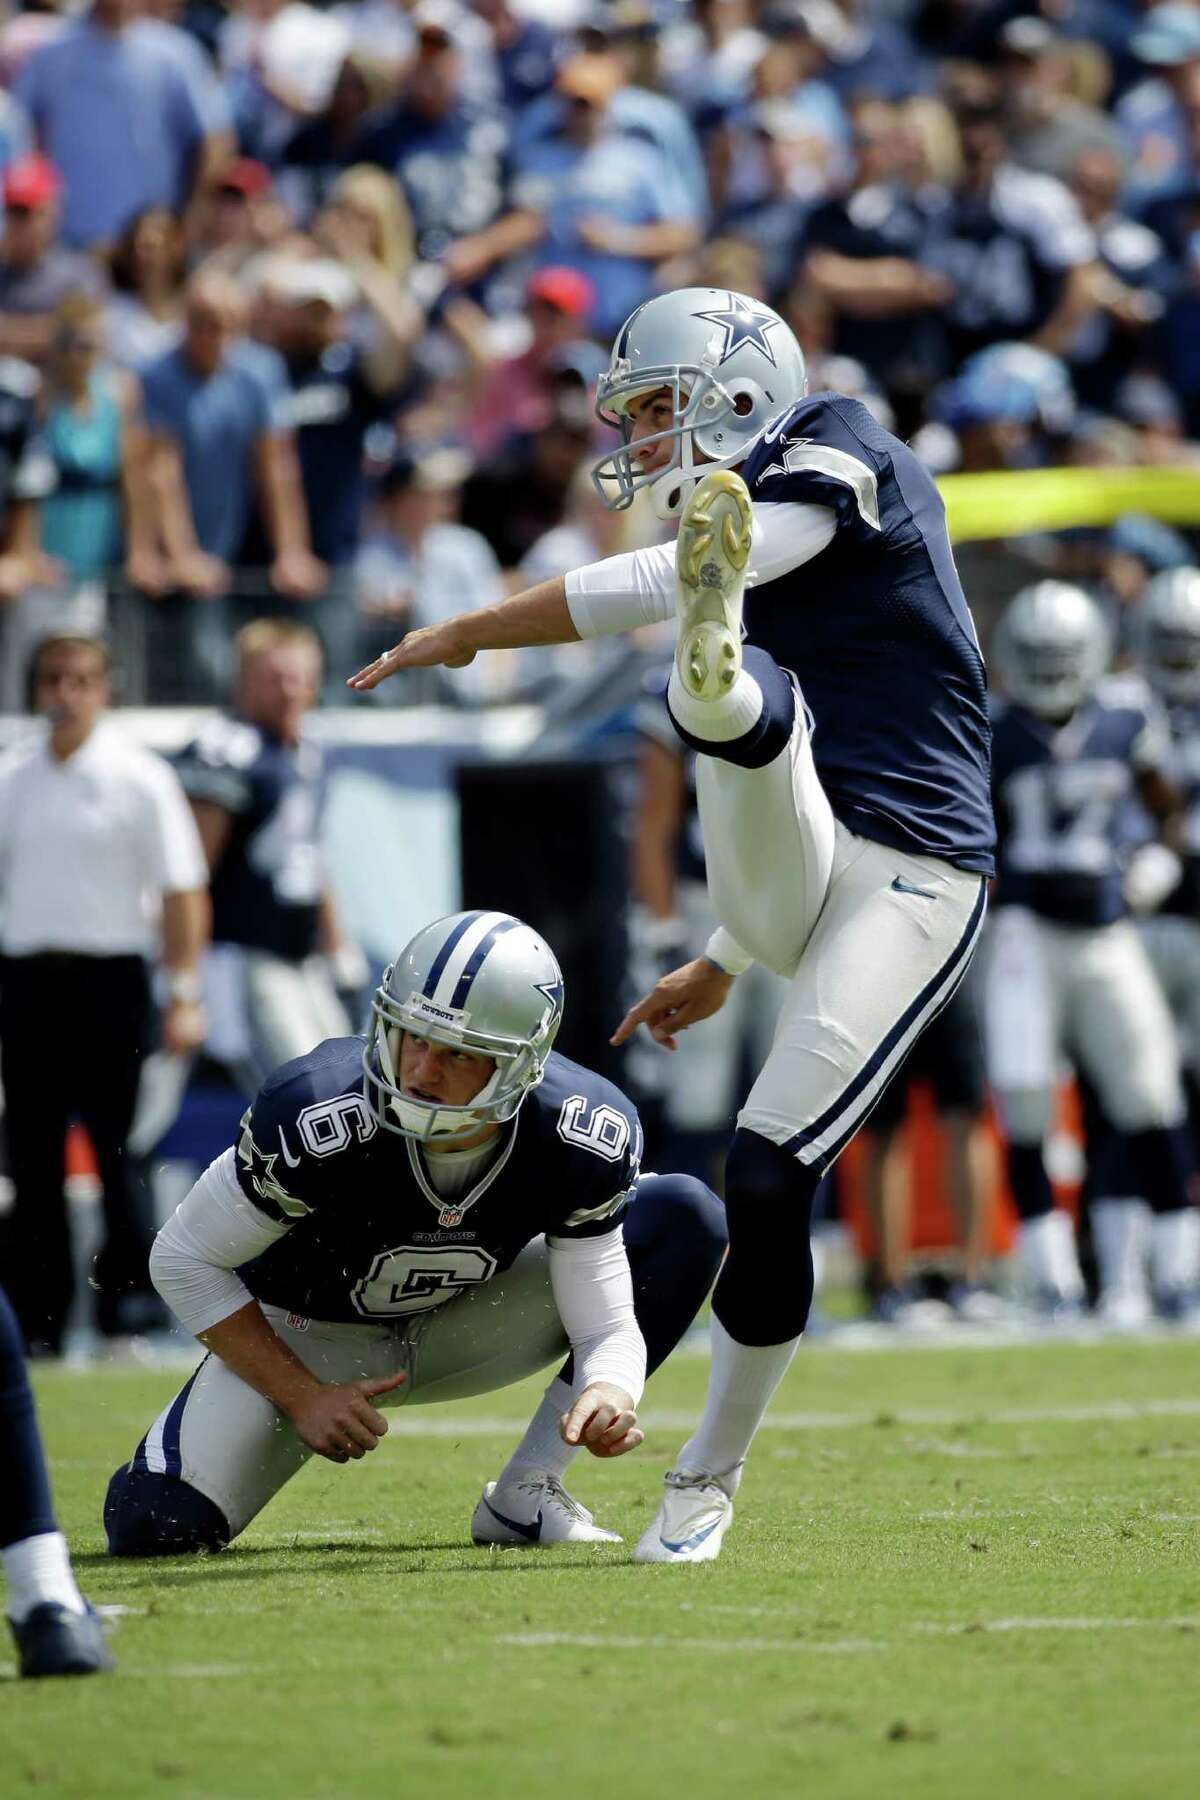 Dallas Cowboys kicker Dan Bailey right, kicks a field goal against the Tennessee Titans as Chris Jones (6) holds in the first quarter of an NFL football game Sunday, Sept. 14, 2014, in Nashville, Tenn.